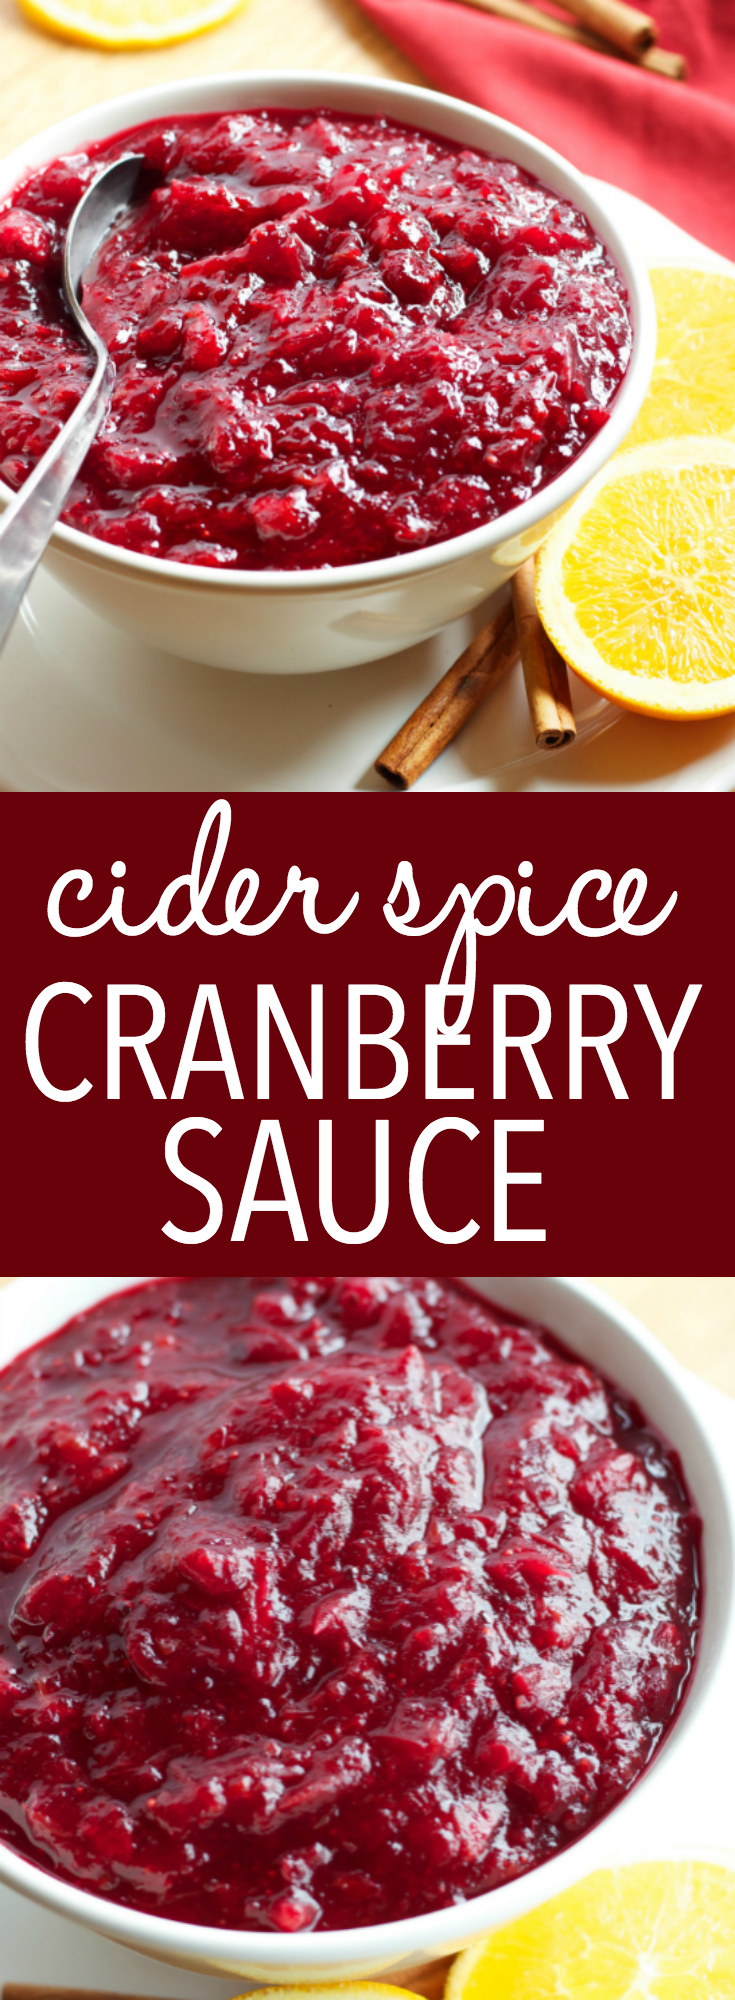 This Cider Spice Cranberry Sauce is an easy to make homemade cranberry sauce recipe with the flavors of mulled cider. Perfect for Christmas dinner! Recipe from thebusybaker.ca! #cranberrysauce #homemadecranberrysauce #easycranberrysauce via @busybakerblog